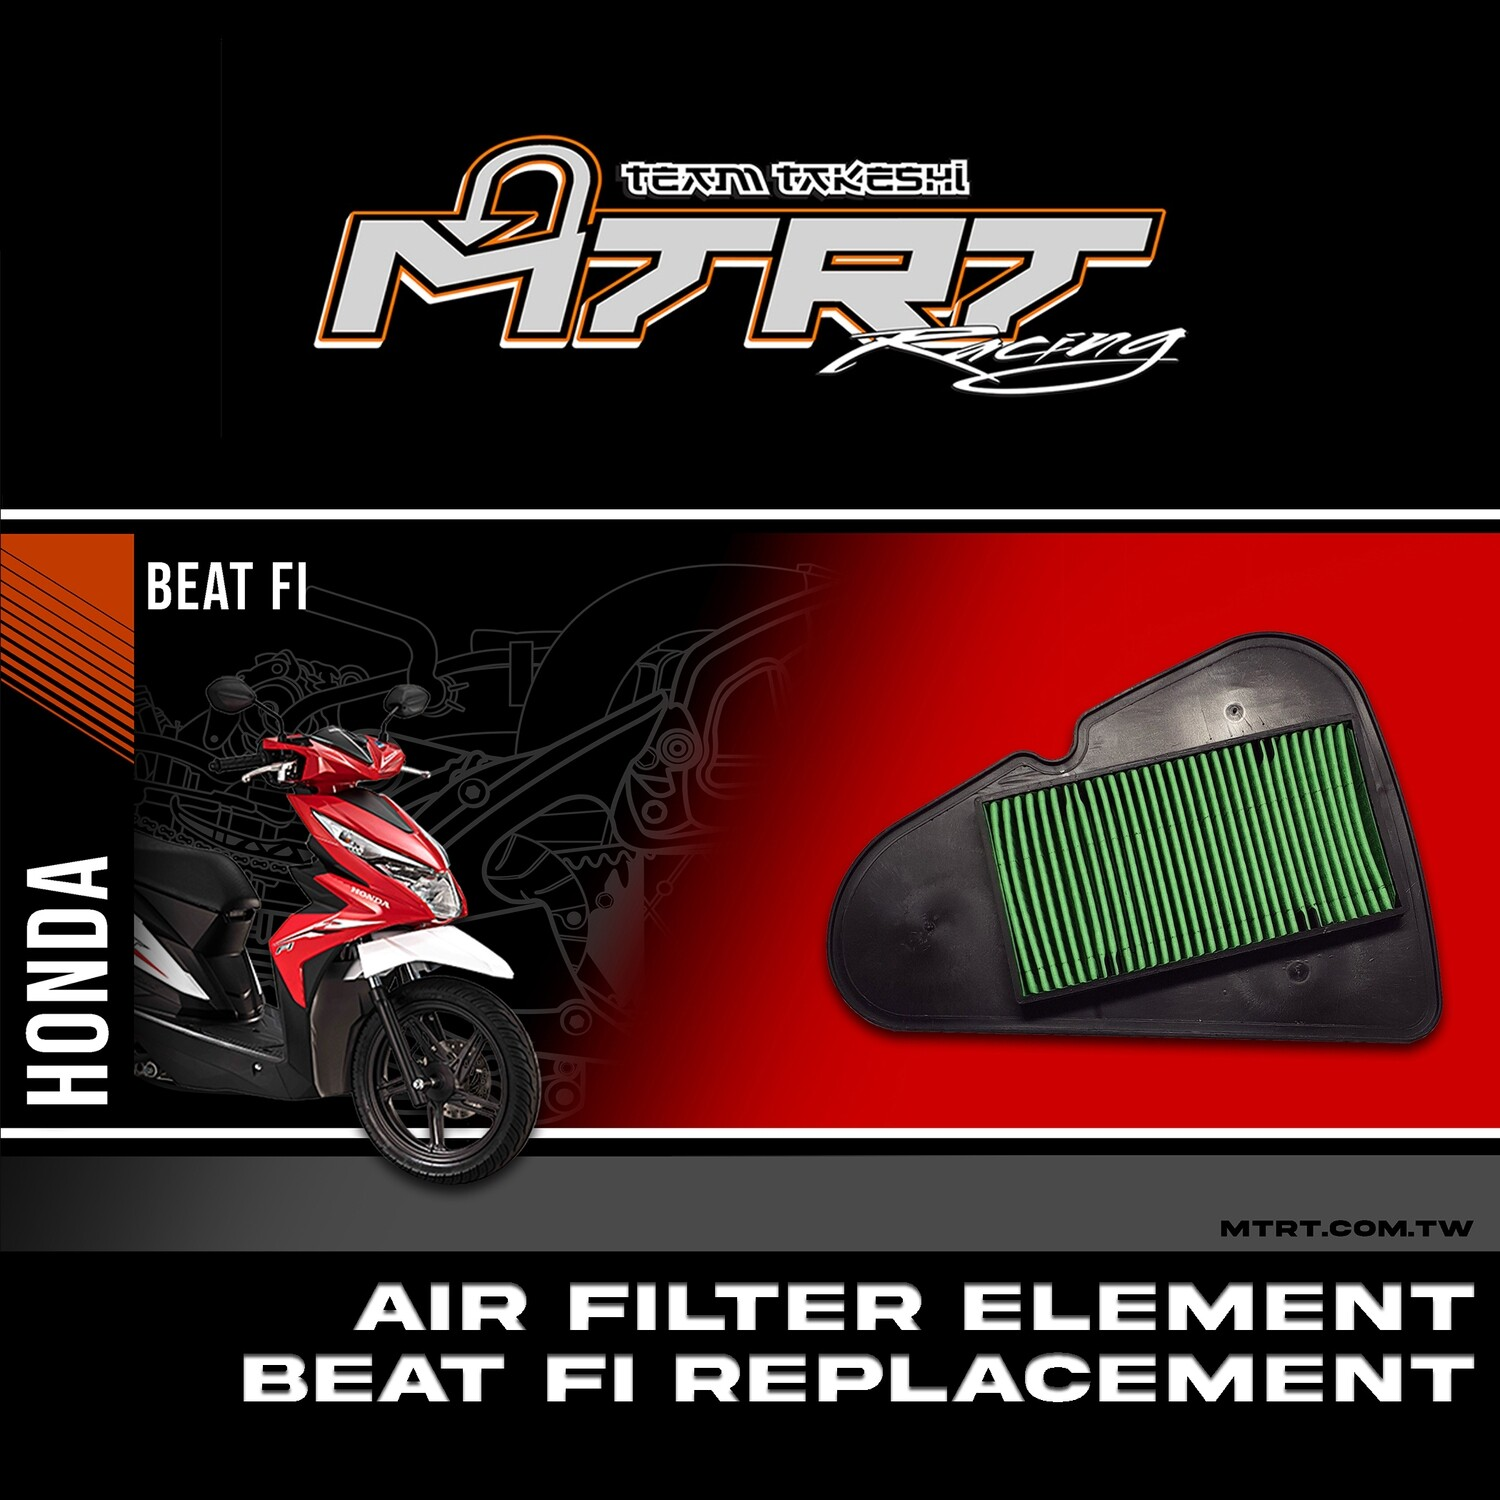 AIR FILTER ELEMENT BEAT Fi Replacement